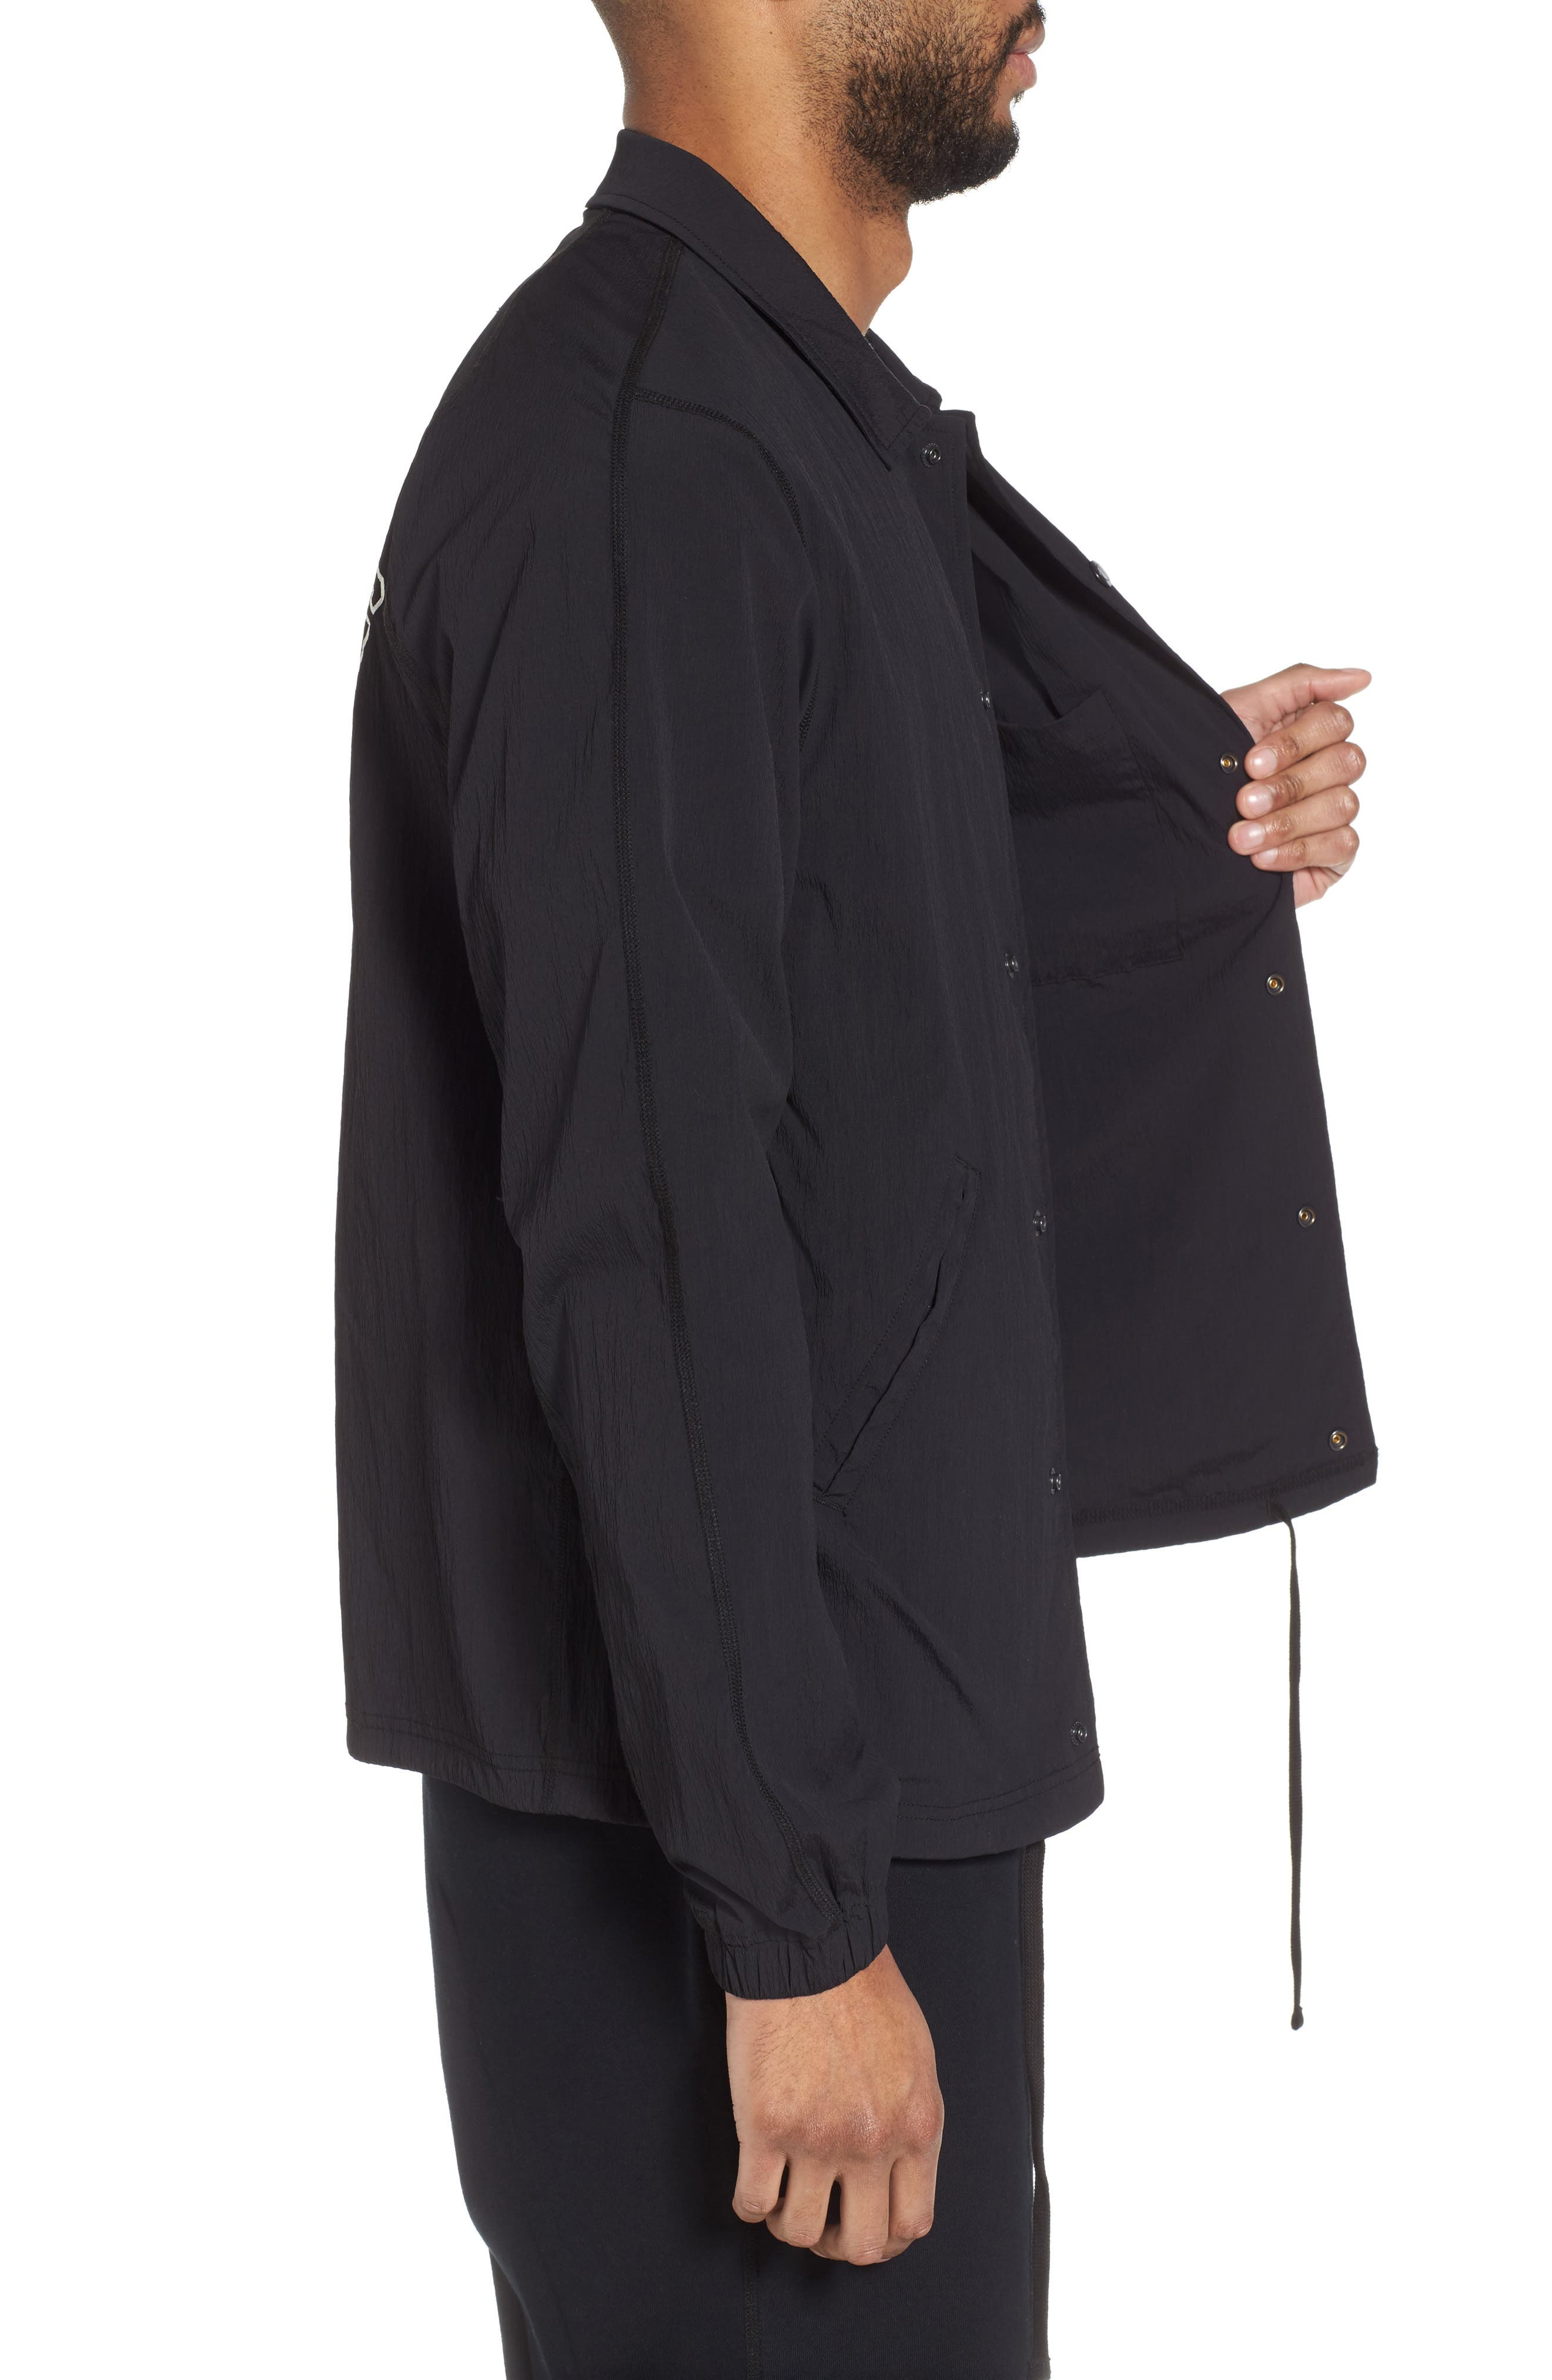 Coach's Jacket,                             Alternate thumbnail 3, color,                             Black